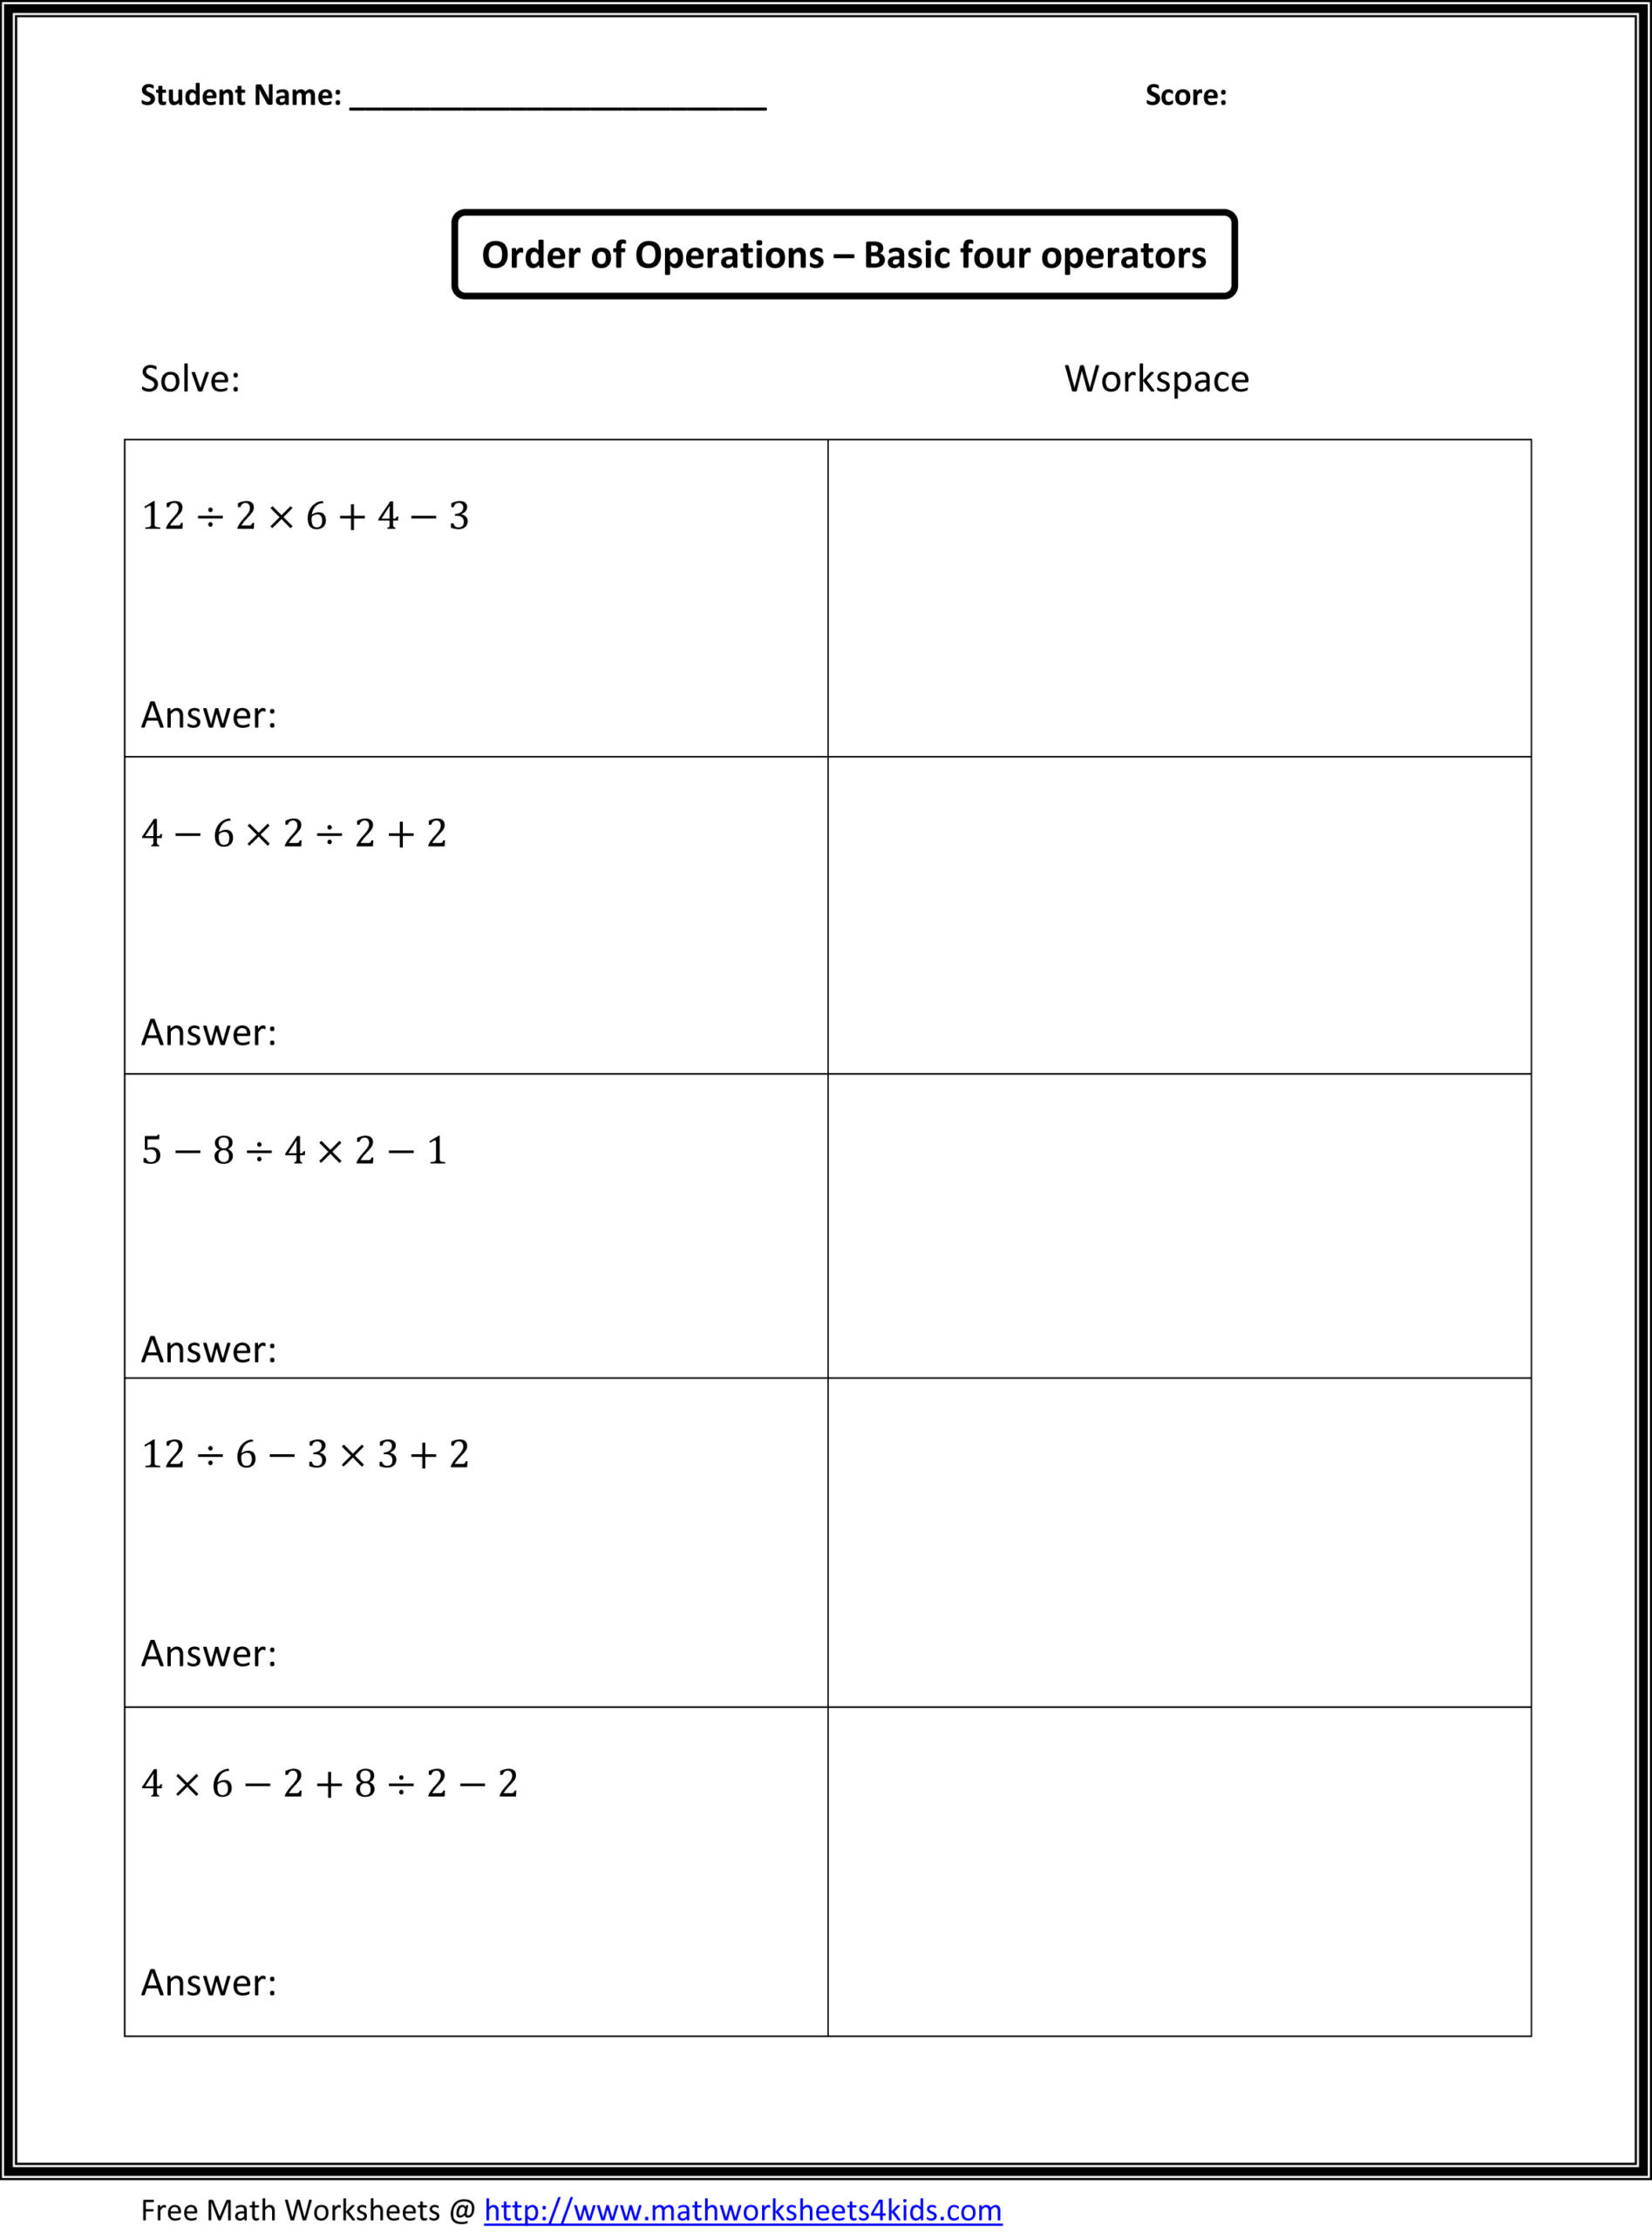 Line Graph Worksheets 5th Grade Copy order Operations 5th Grade Lessons Tes Teach Free